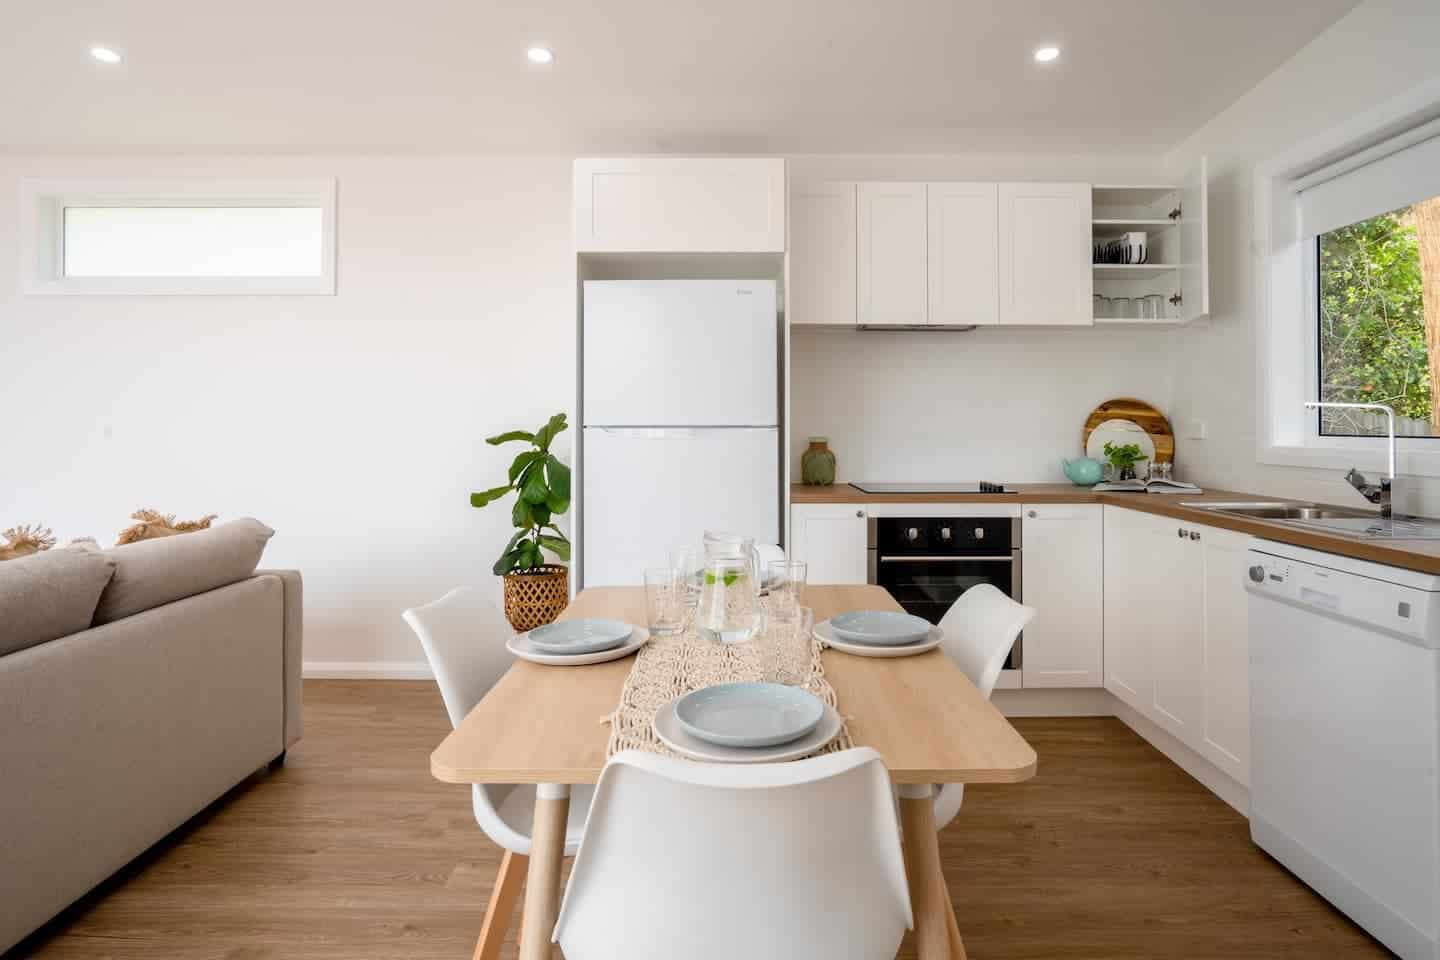 Photo of a top airbnb terrigal titled: Modern 2BR Terrigal Villa relevant to terrigal holiday rental accomodation